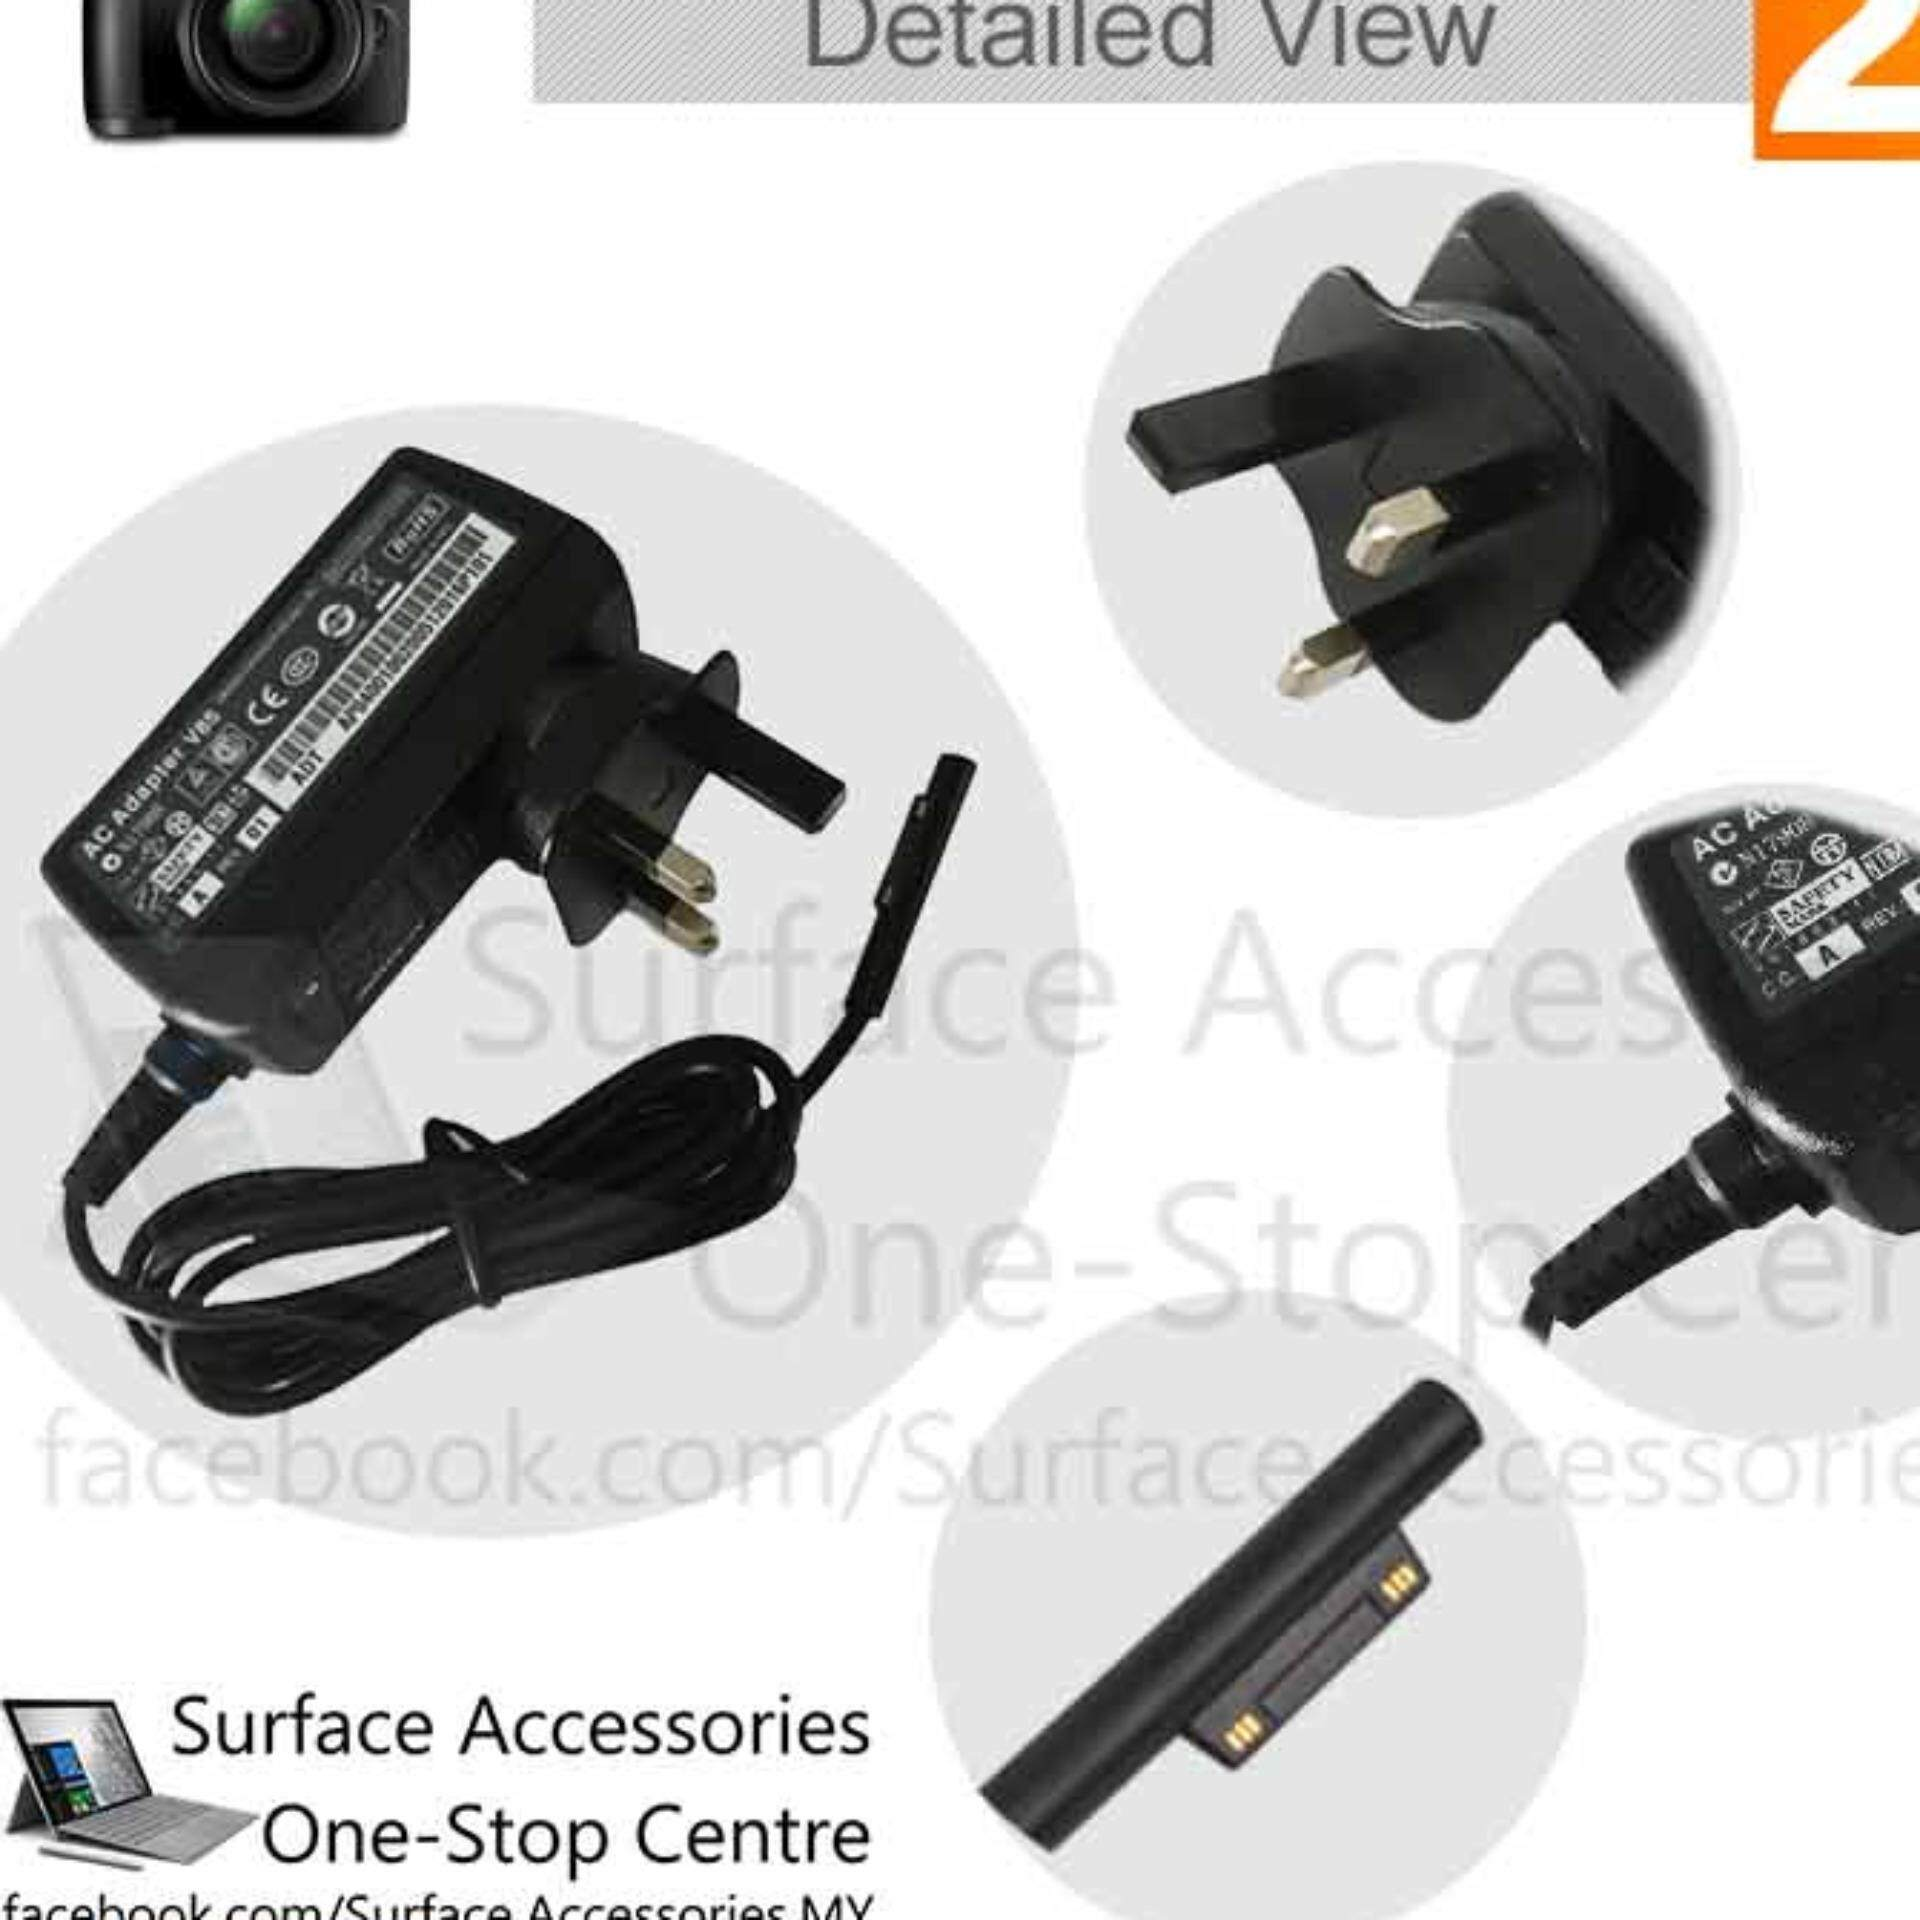 [MALAYSIA] Surface Pro 4 Core M3 24W Charger with Original Charger Cable LED Charger Microsoft Surface Pro 4 Core M3 Charger with Official and Original Microsoft Charging Cable with LED Indicator Replacement Model 1735 Model 1736 [ASSEMBLED IN MALAYSIA]